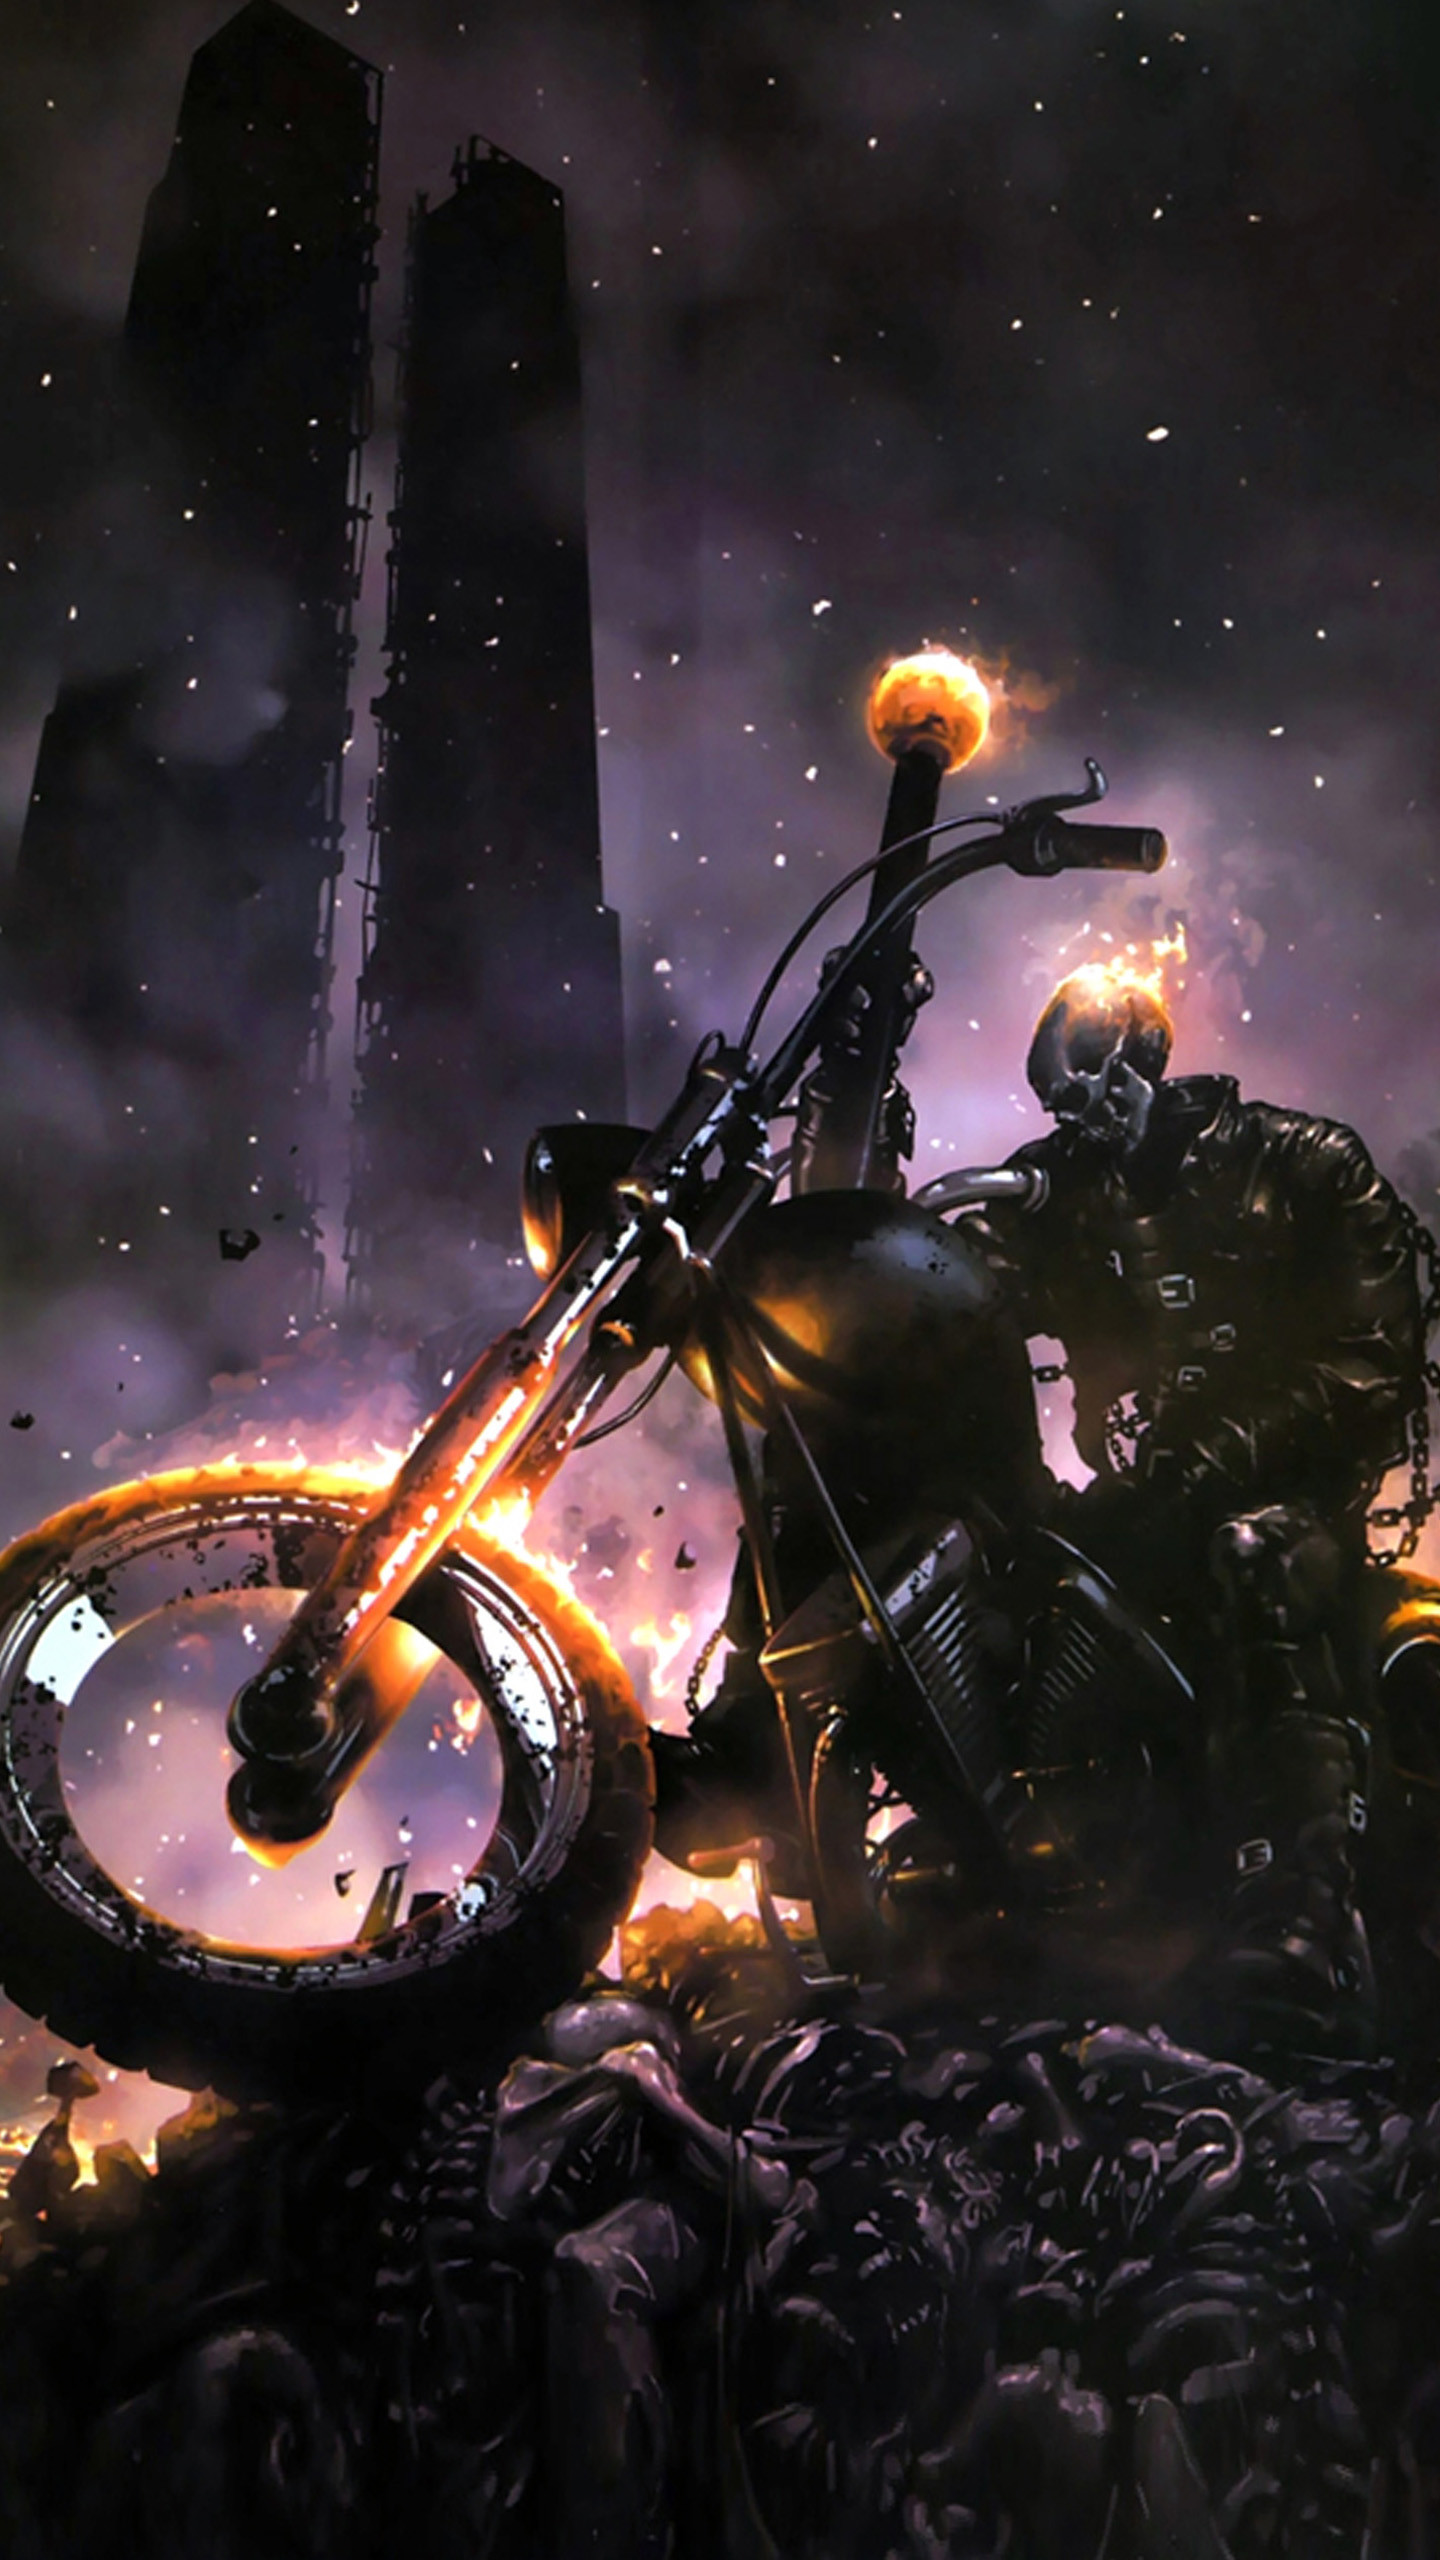 Ghost Rider Bike Wallpapers 58 Images